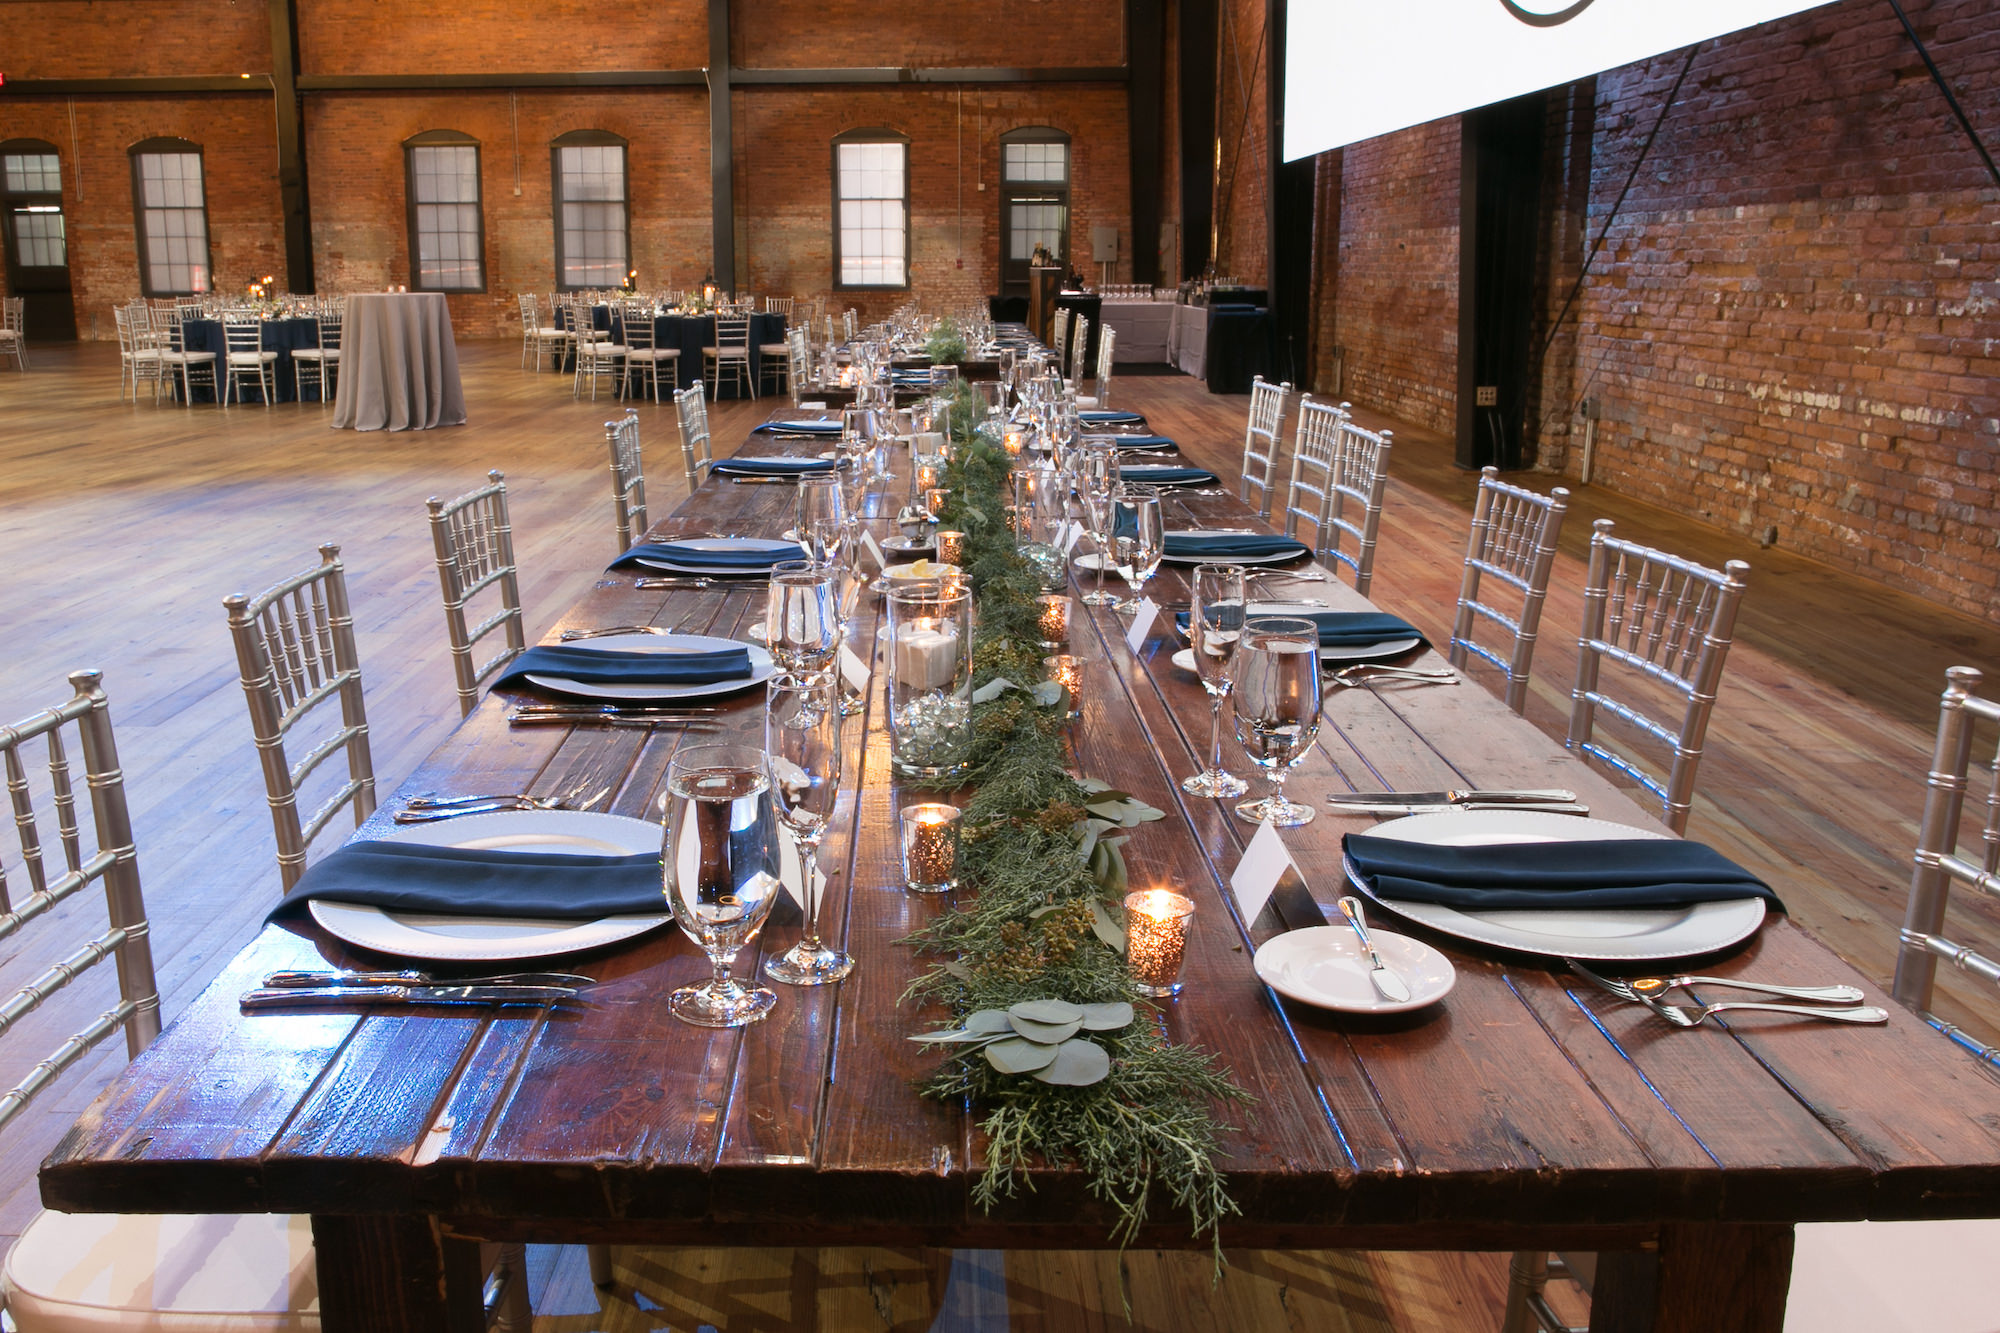 Rustic Wooden Long Feasting Table, Greenery Garland Table Runner, Silver Chiavari Chairs and Chargers   Tampa Bay Wedding Photographer Carrie Wildes Photography   Chair, Chargers and Table Rentals A Chair Affair   Historic Industrial Wedding Venue Armature Works   Wedding Planner Love Lee Lane